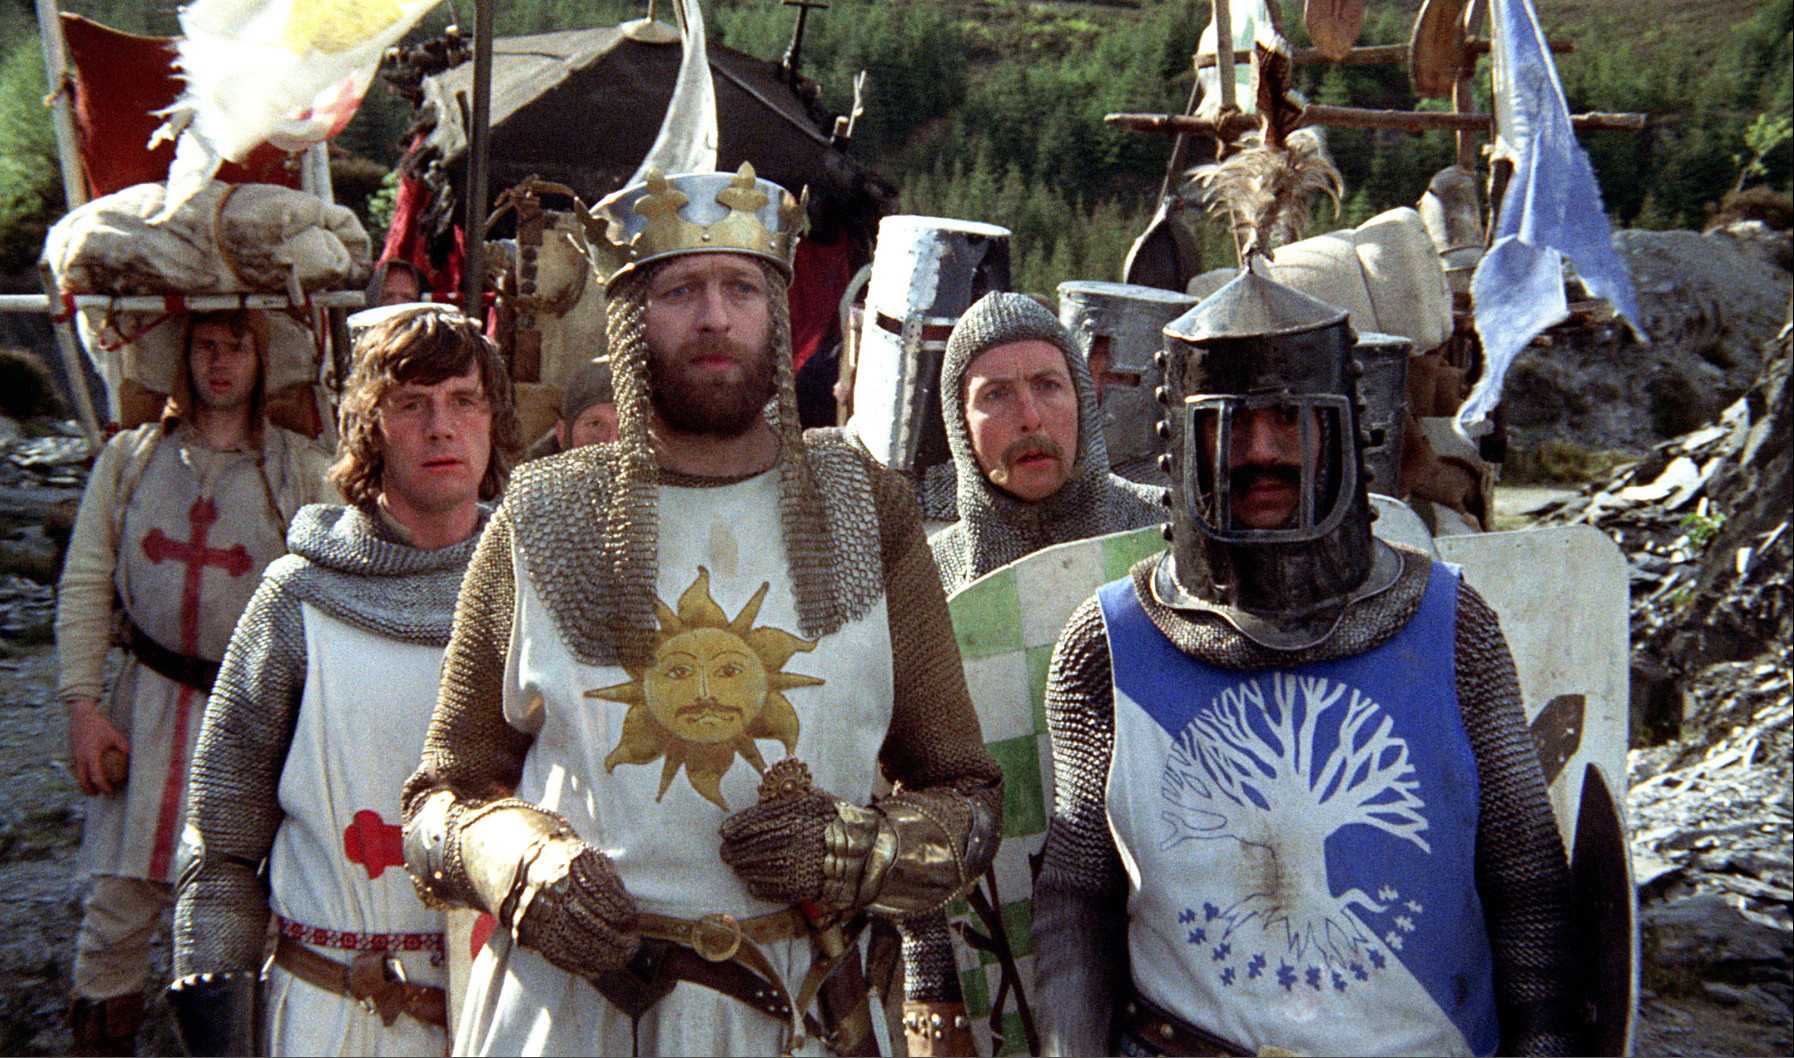 6. Monty Python and the Holy Grail